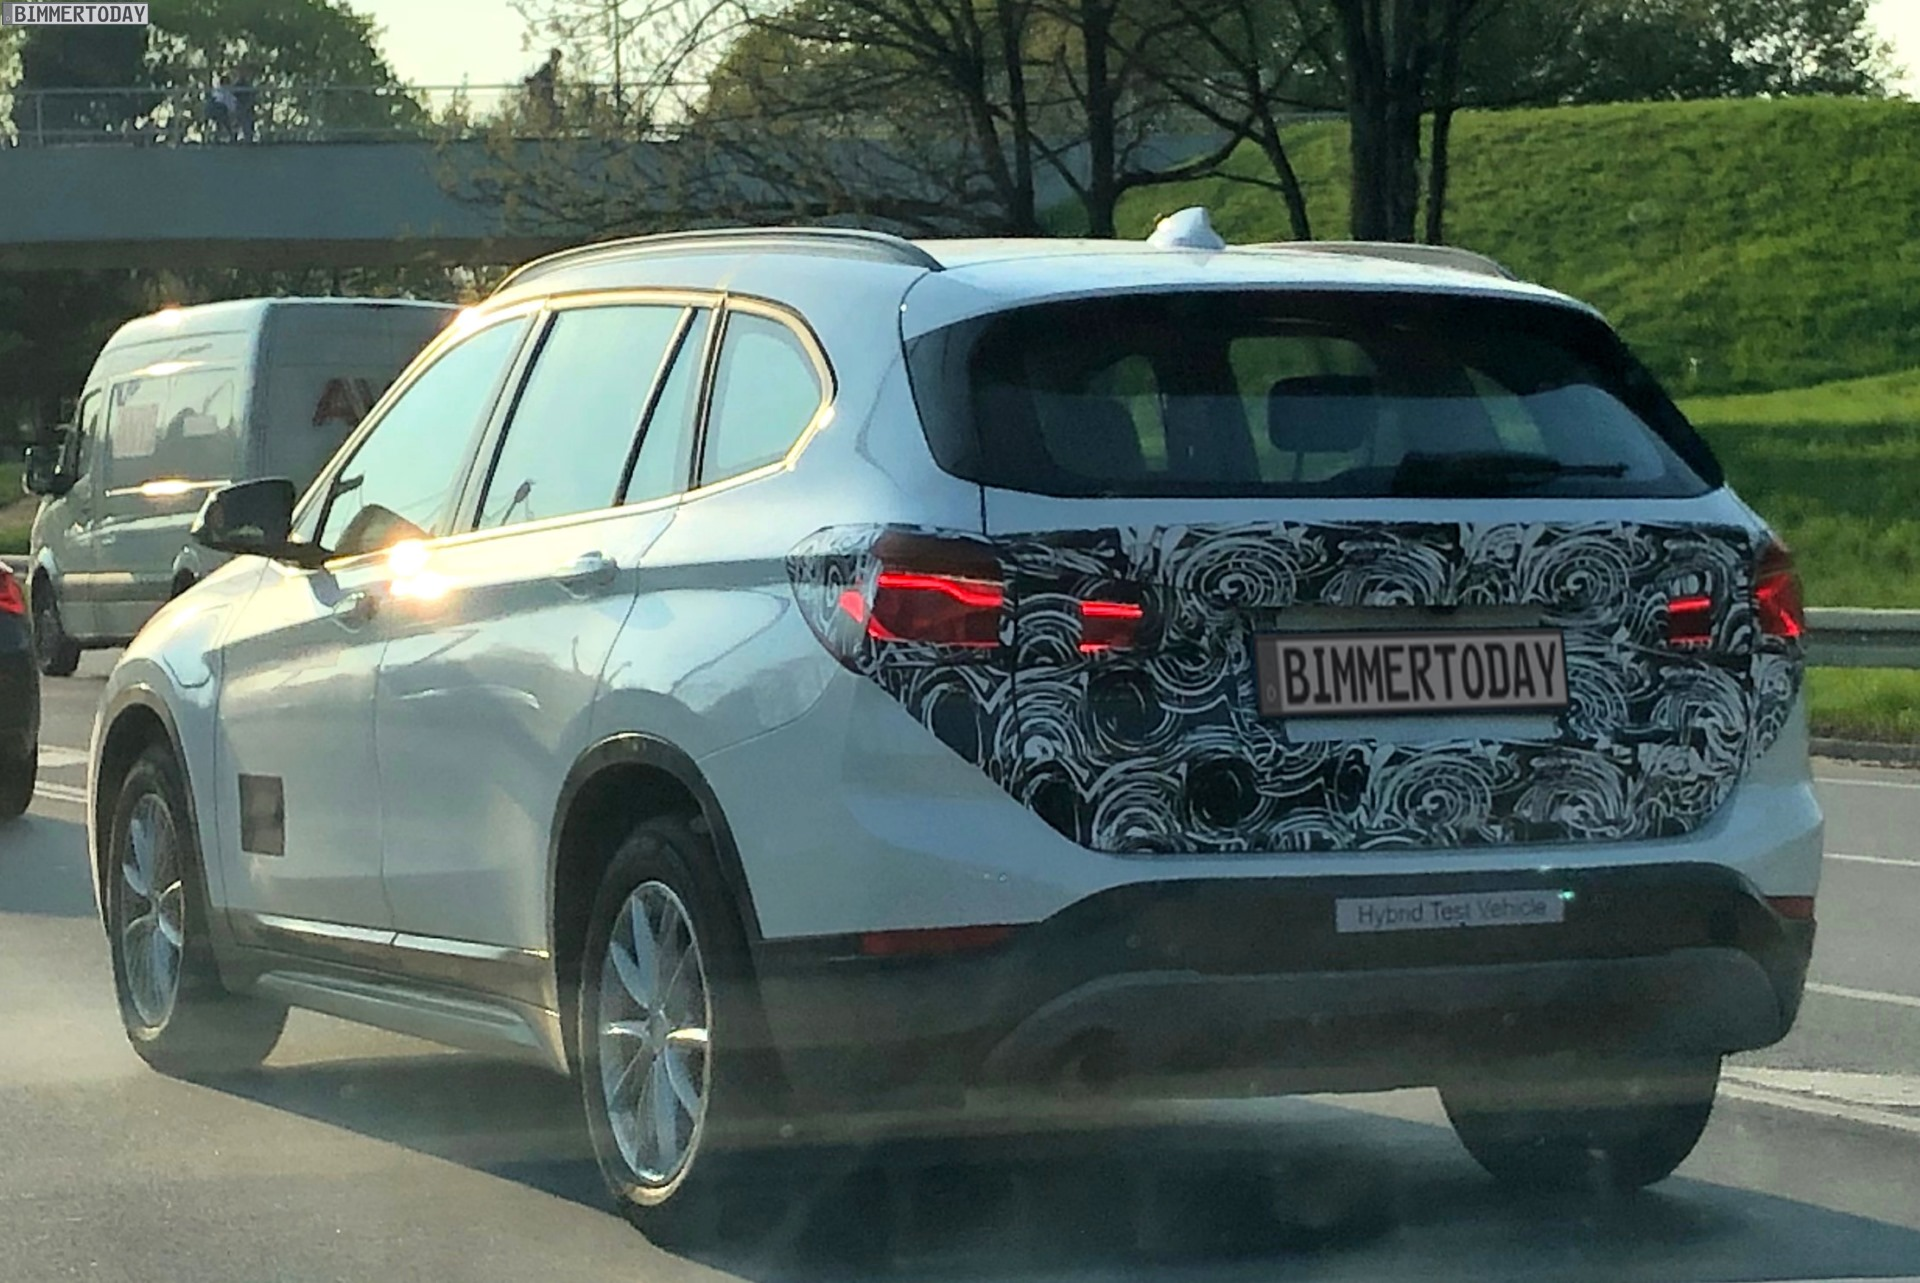 spied: bmw x1 xdrive 25e -- plug-in hybrid variant on its way